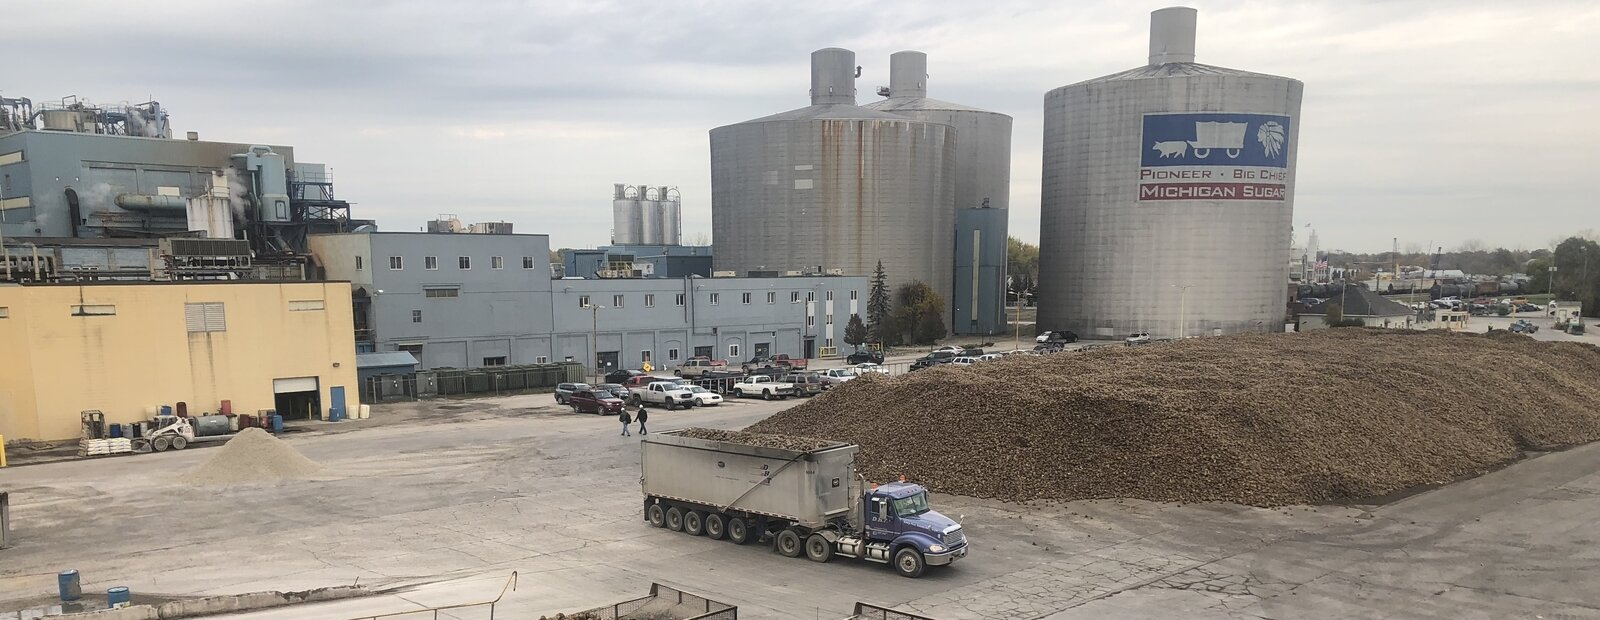 Michigan Sugar processes 1.6 million tons of sugar beets each year at its 2600 S. Euclid Ave. location in Bay City. The state is now considering a study on how to use the waste from that processing to de-ice roads.